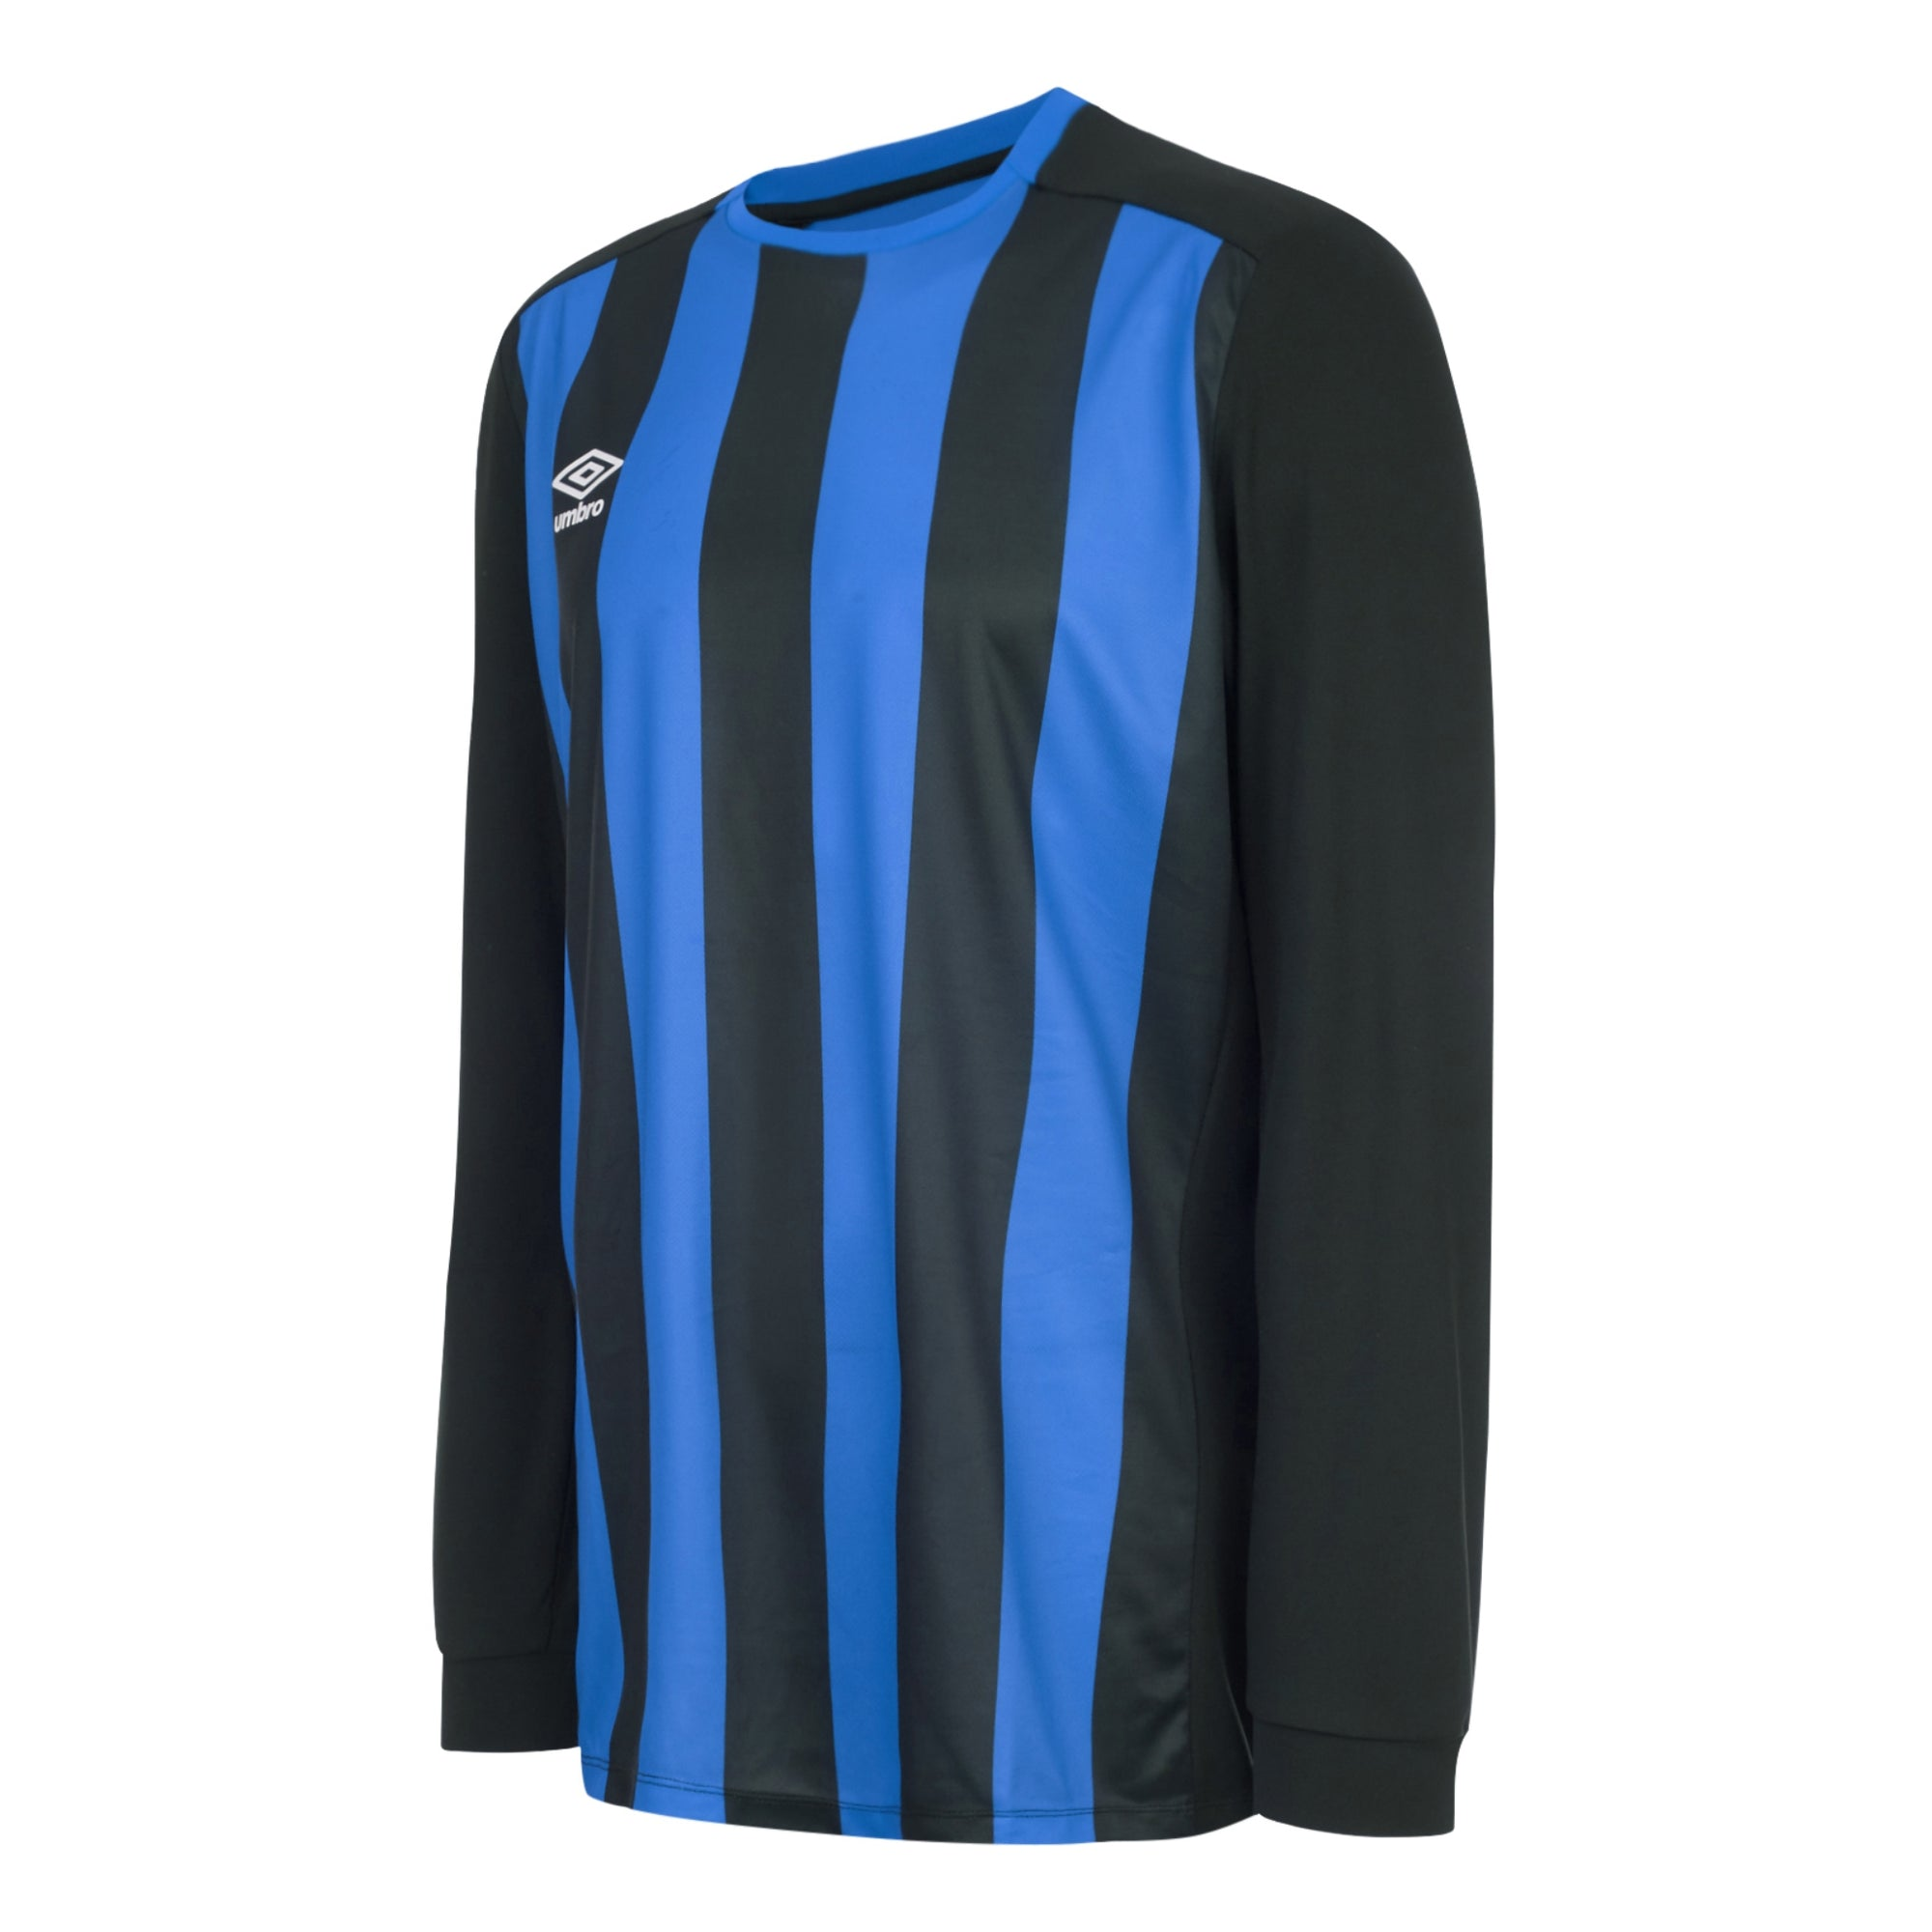 Umbro Milan Jersey LS - Black/Royal